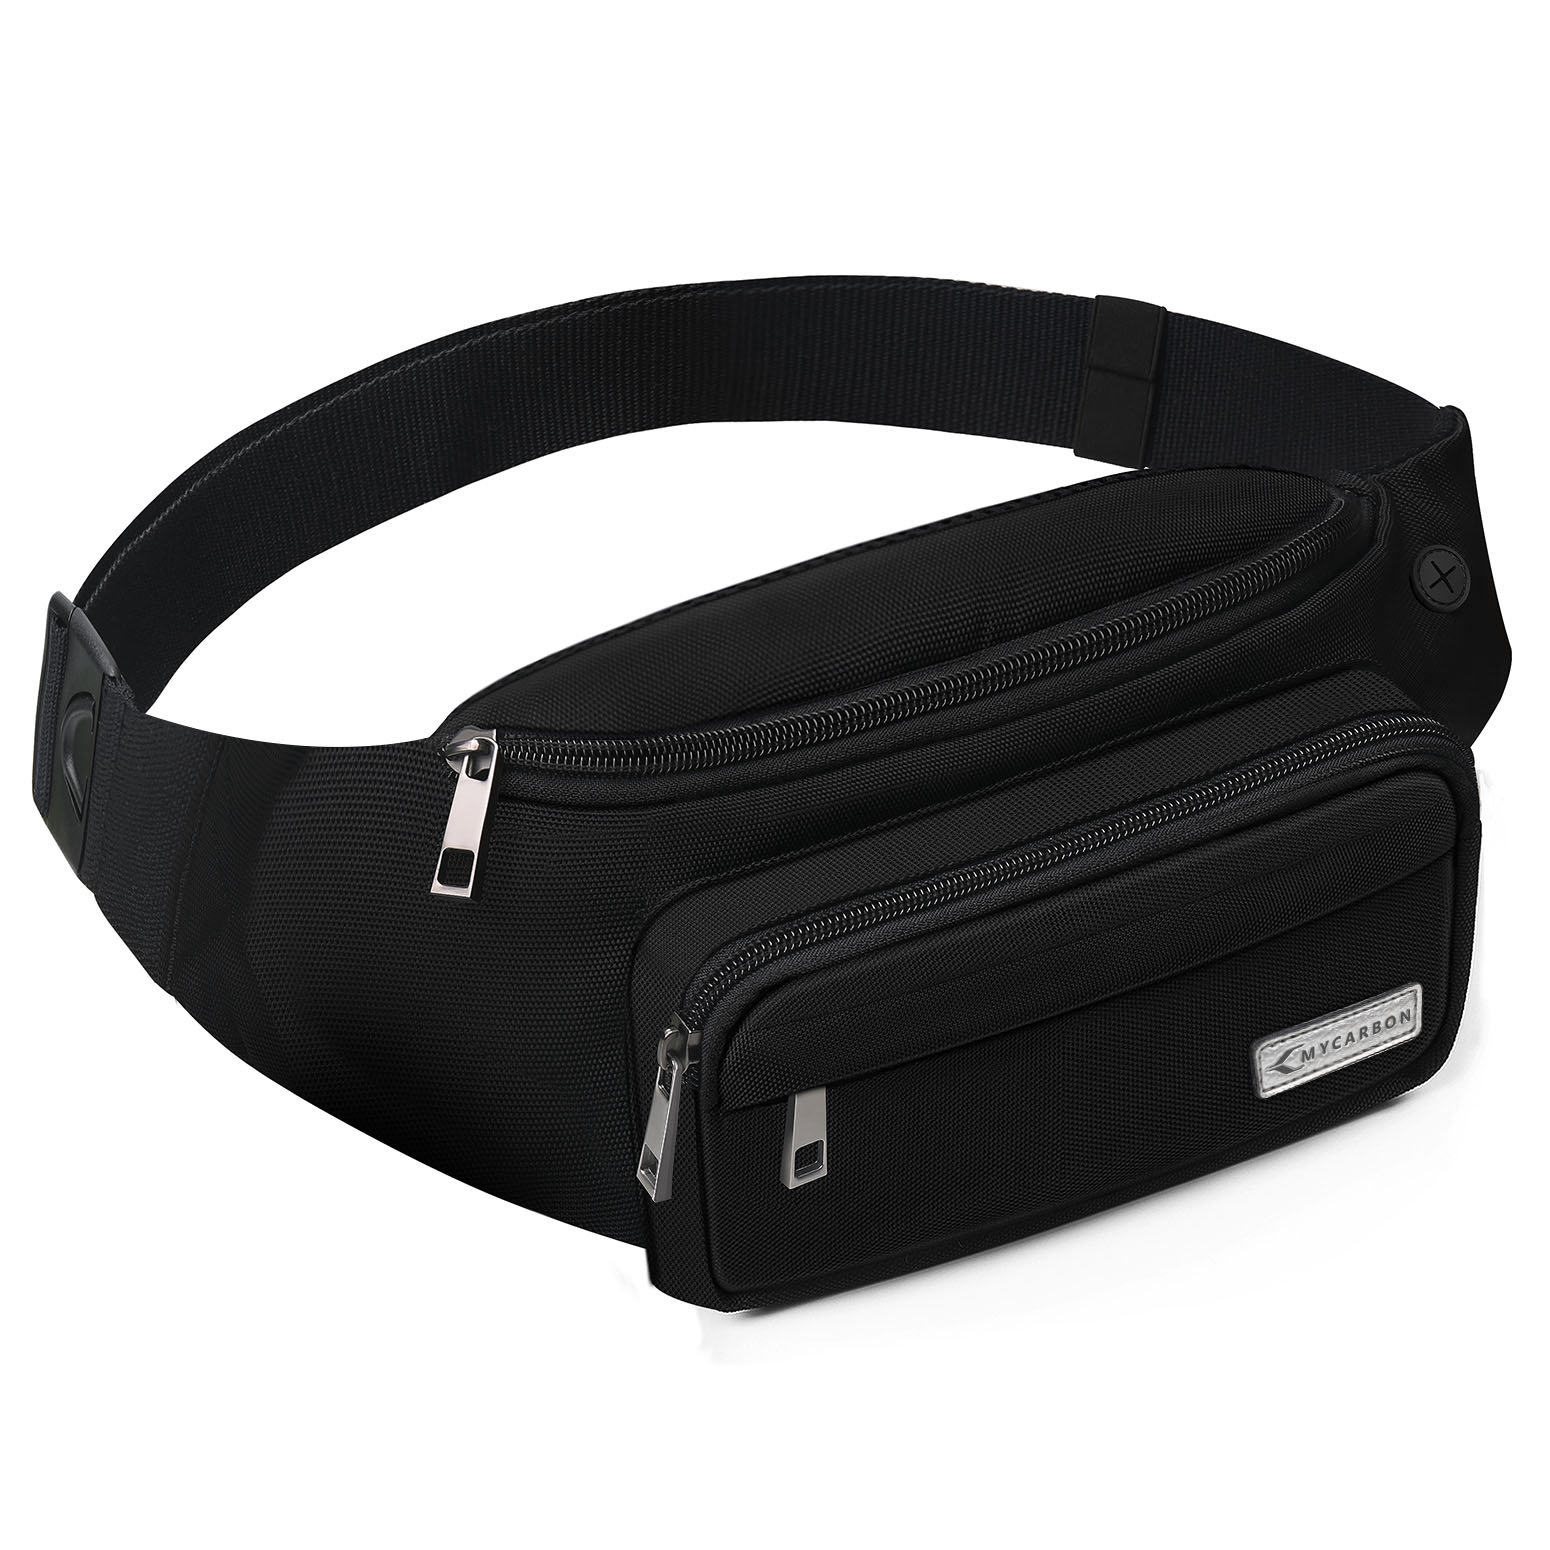 MYCARBON Fanny Packs for Women and Men Cute Large Capacity Waist Pack Non-bounce Running Belt for Travelling Non-slip Cotton Belt Fanny Bag Durable Waist Pouch for Hiking Cycling Running Working Black